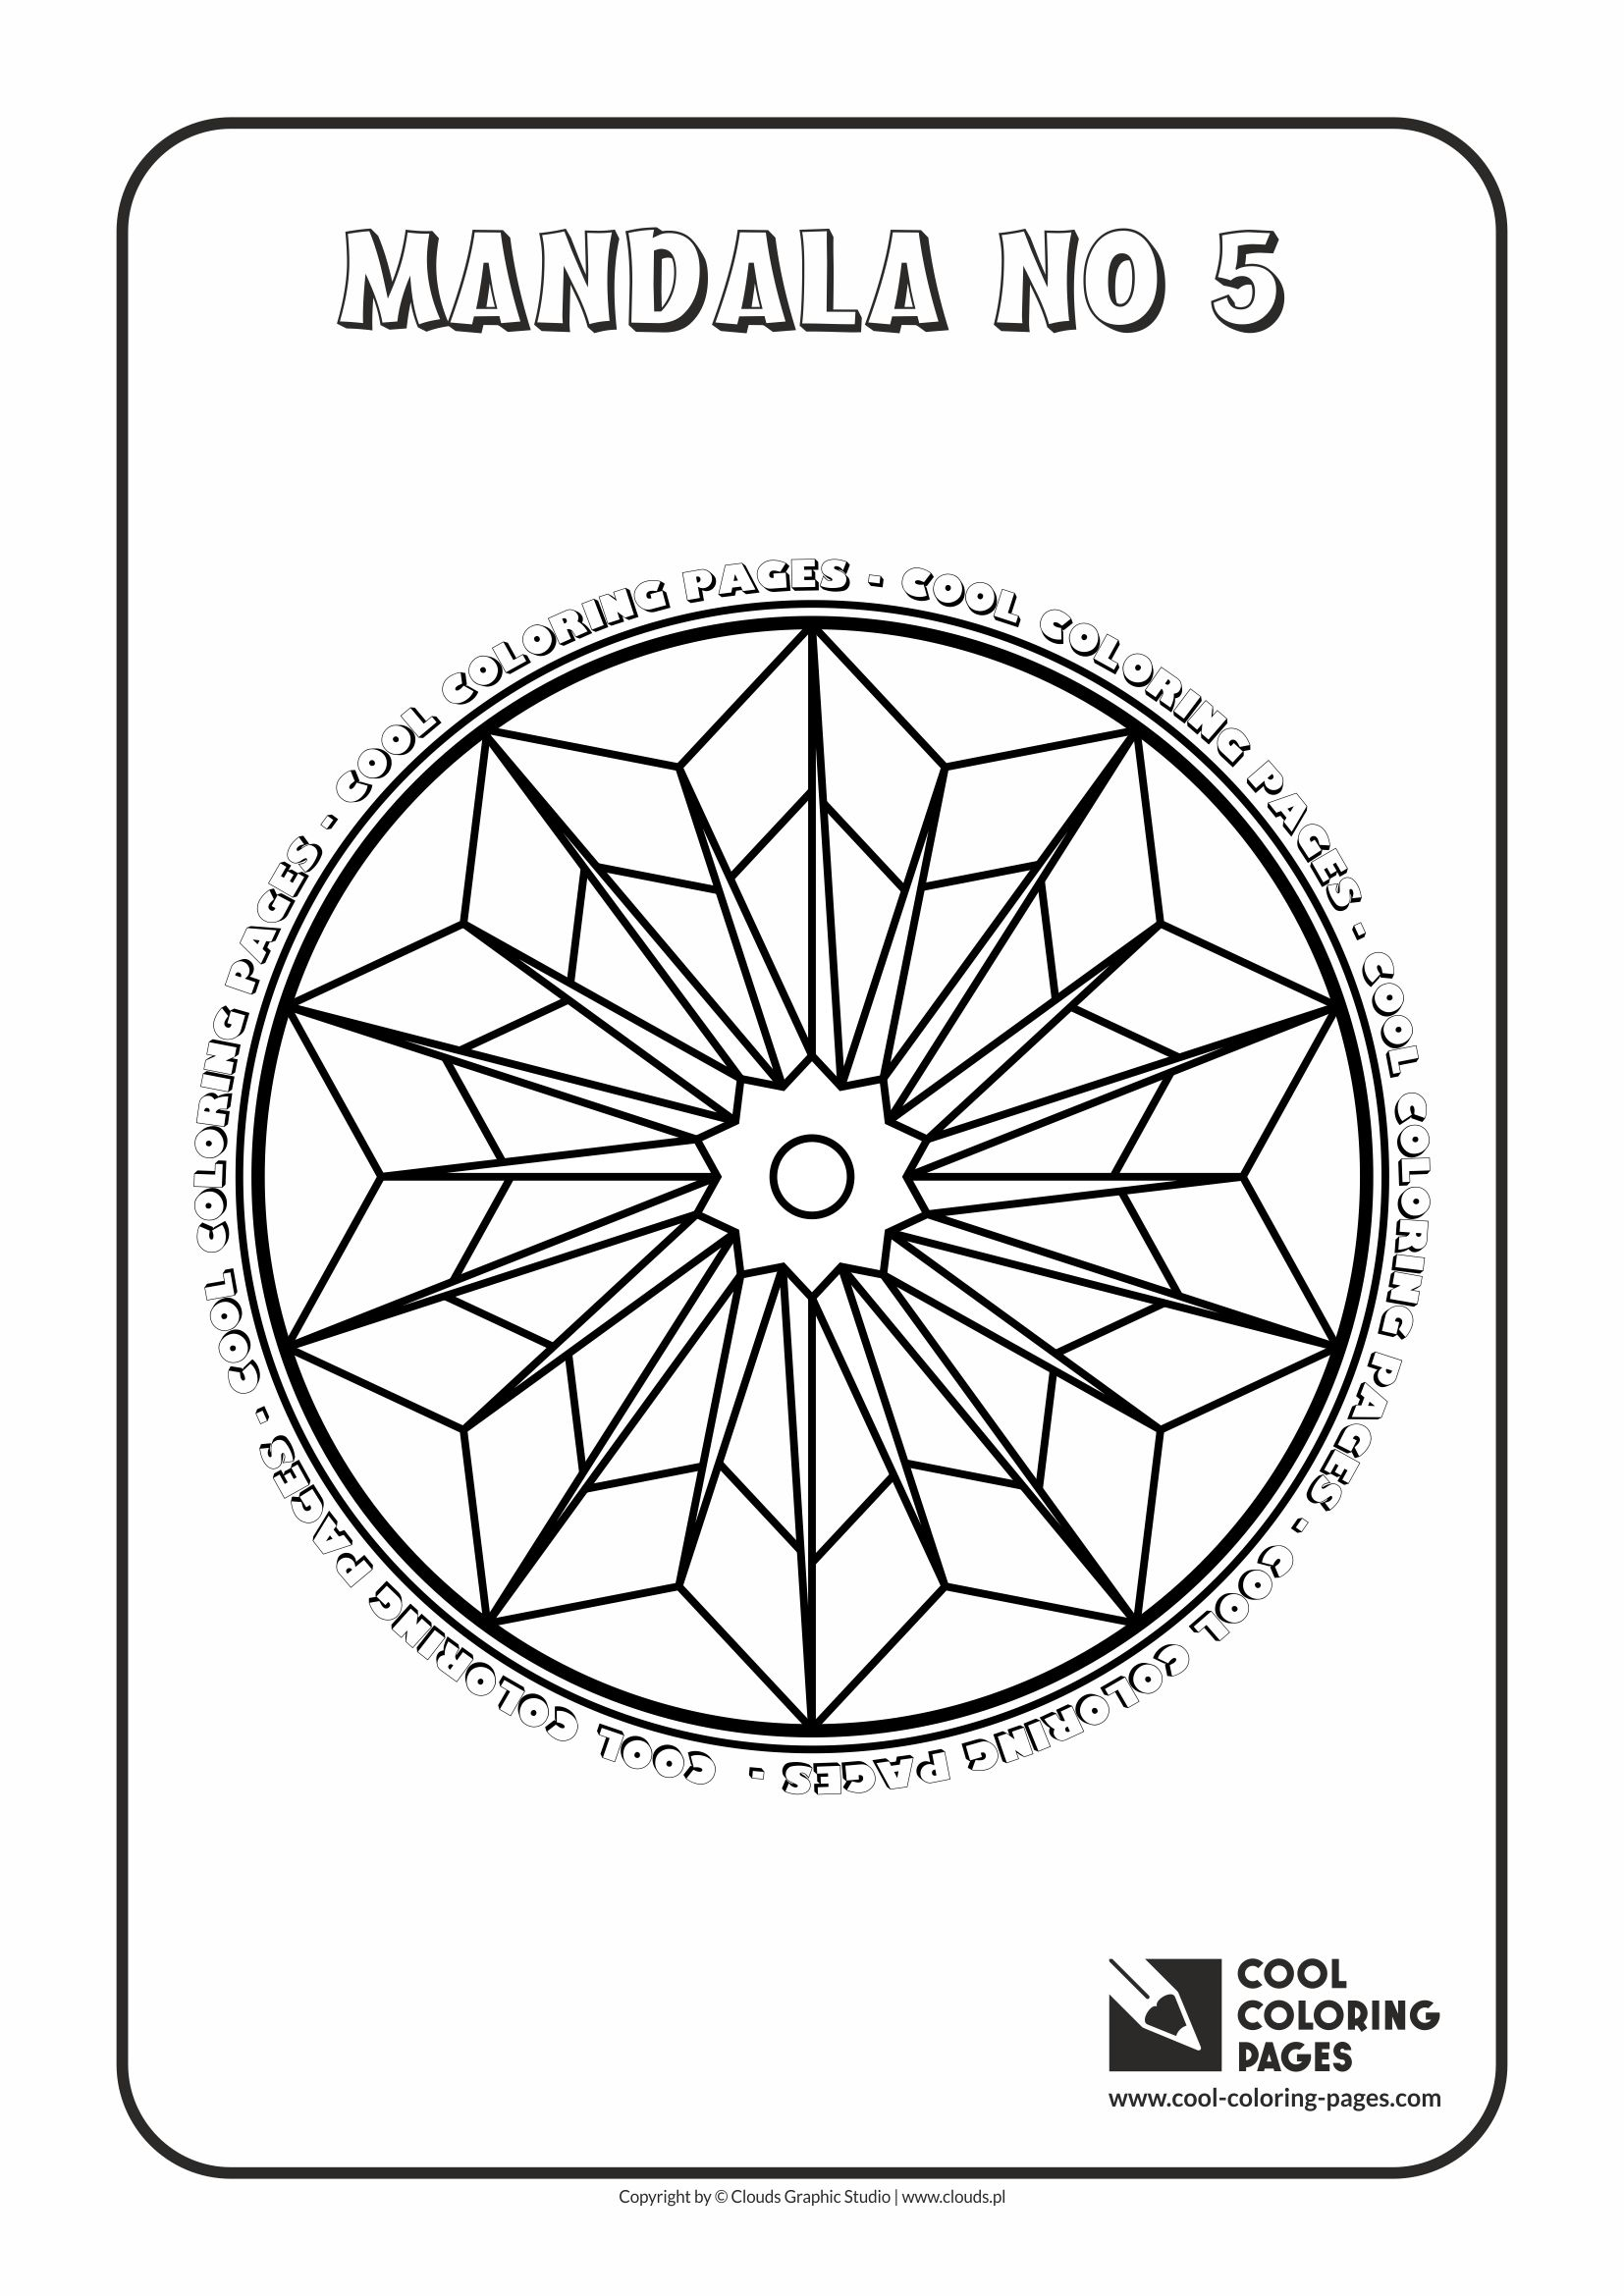 Cool Coloring Pages - Mandalas / Mandala no 5